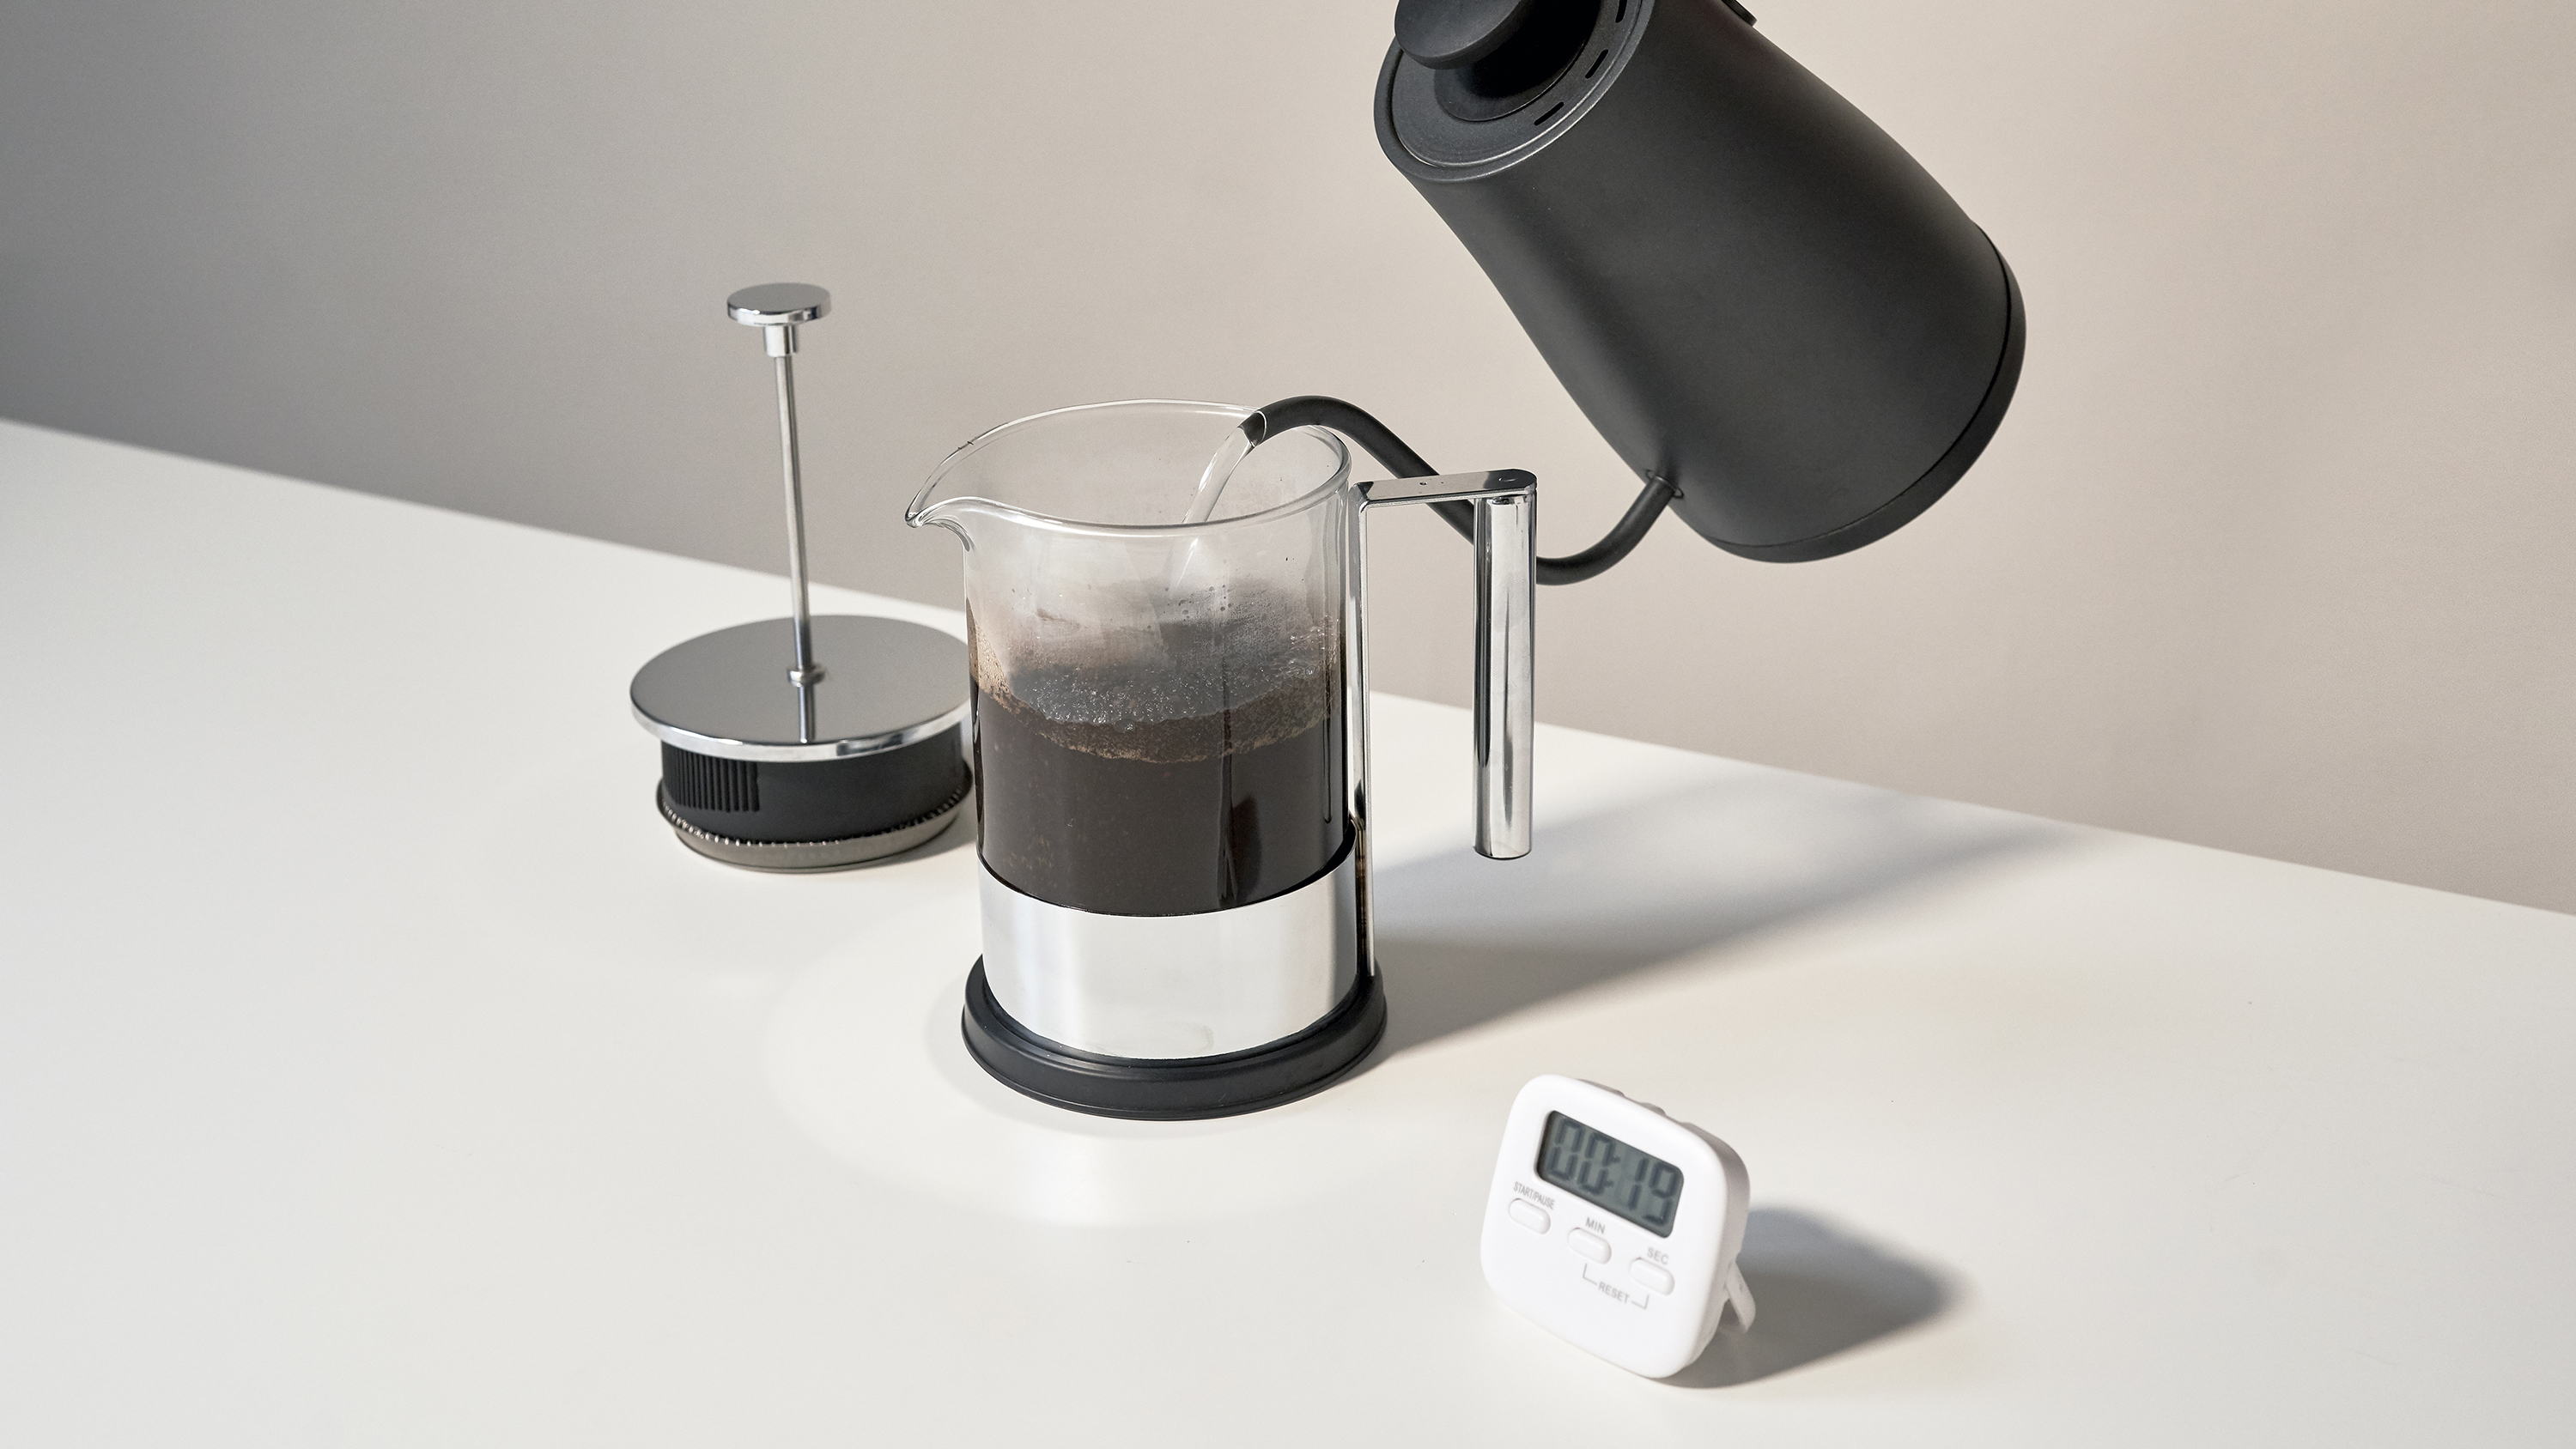 Making coffee with a French press, using a goose-neck kettle and a timer.